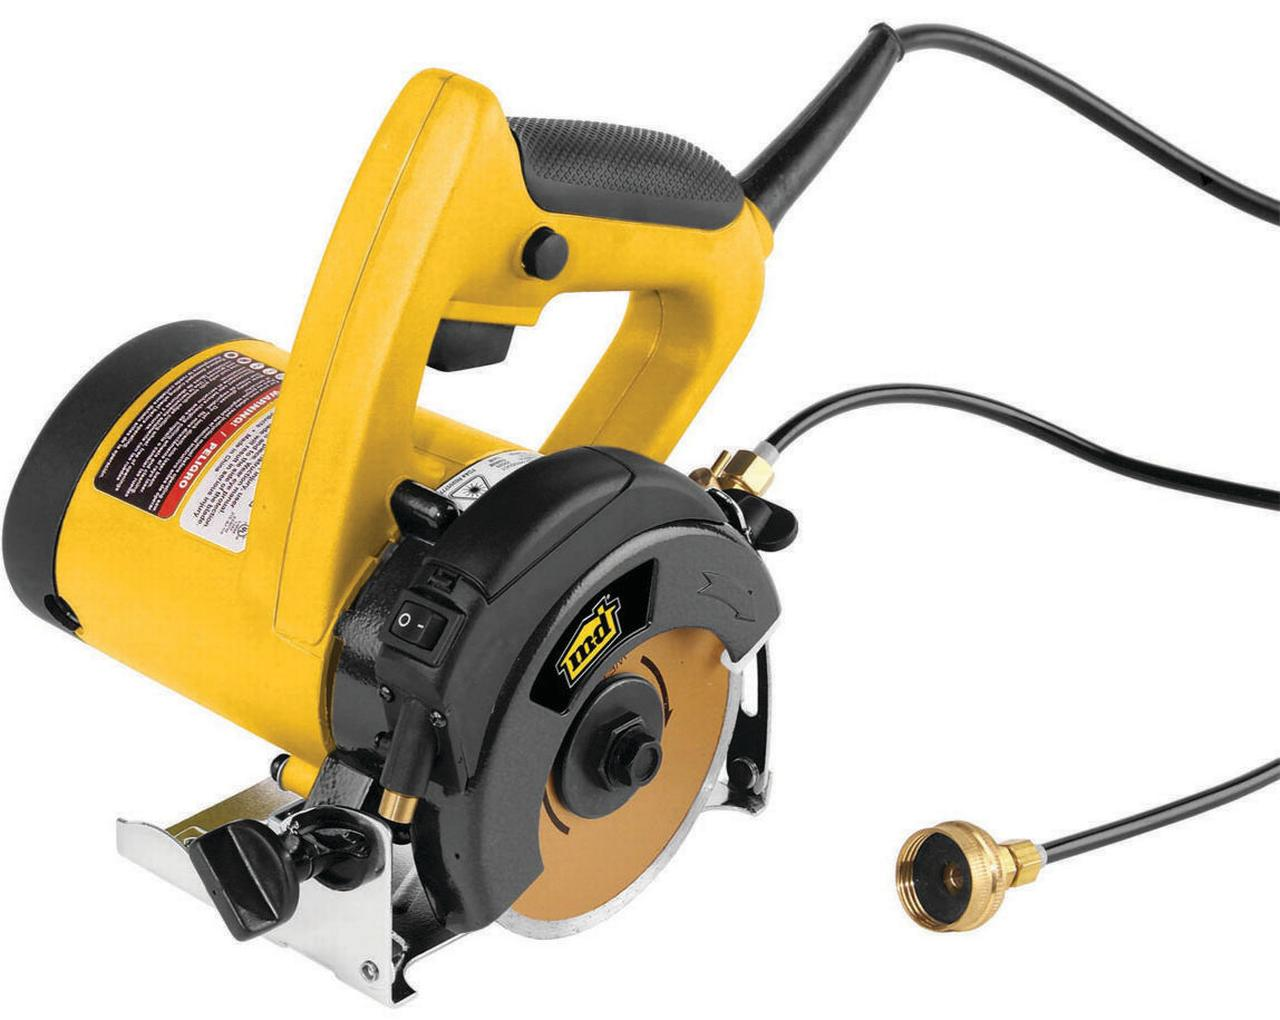 M-D Building 49046 Tile Saws, 10 Amp-4 Inch by Tower Sealants